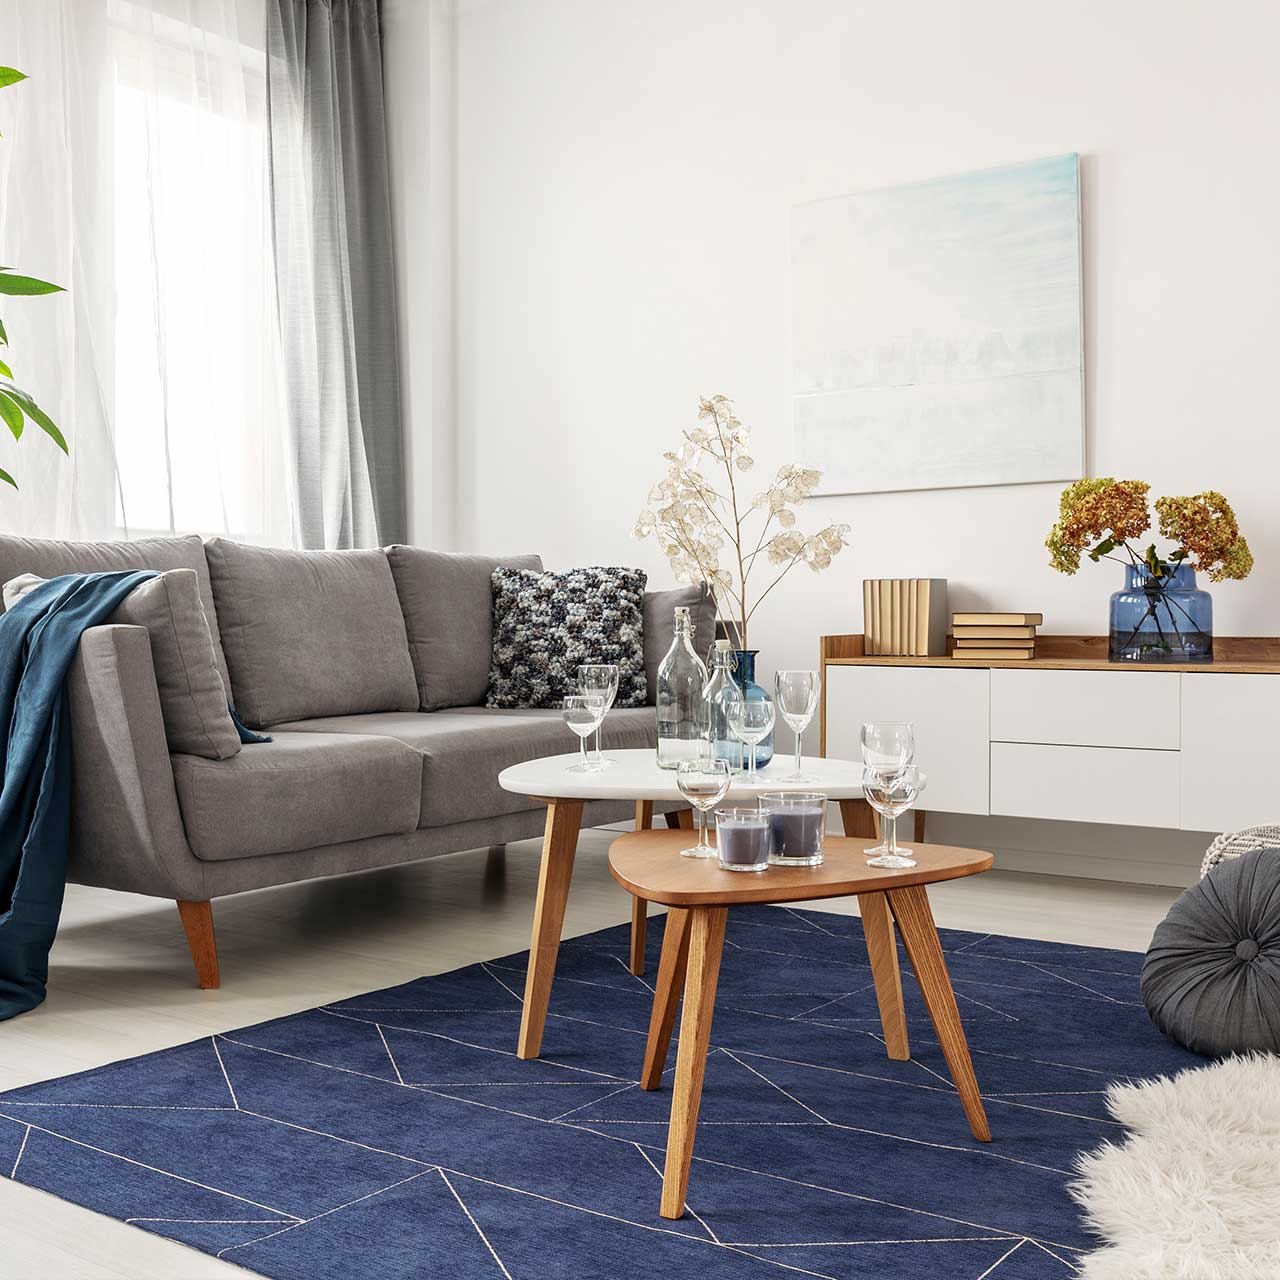 Select beautiful rugs bring in colour giving your living room interior decor